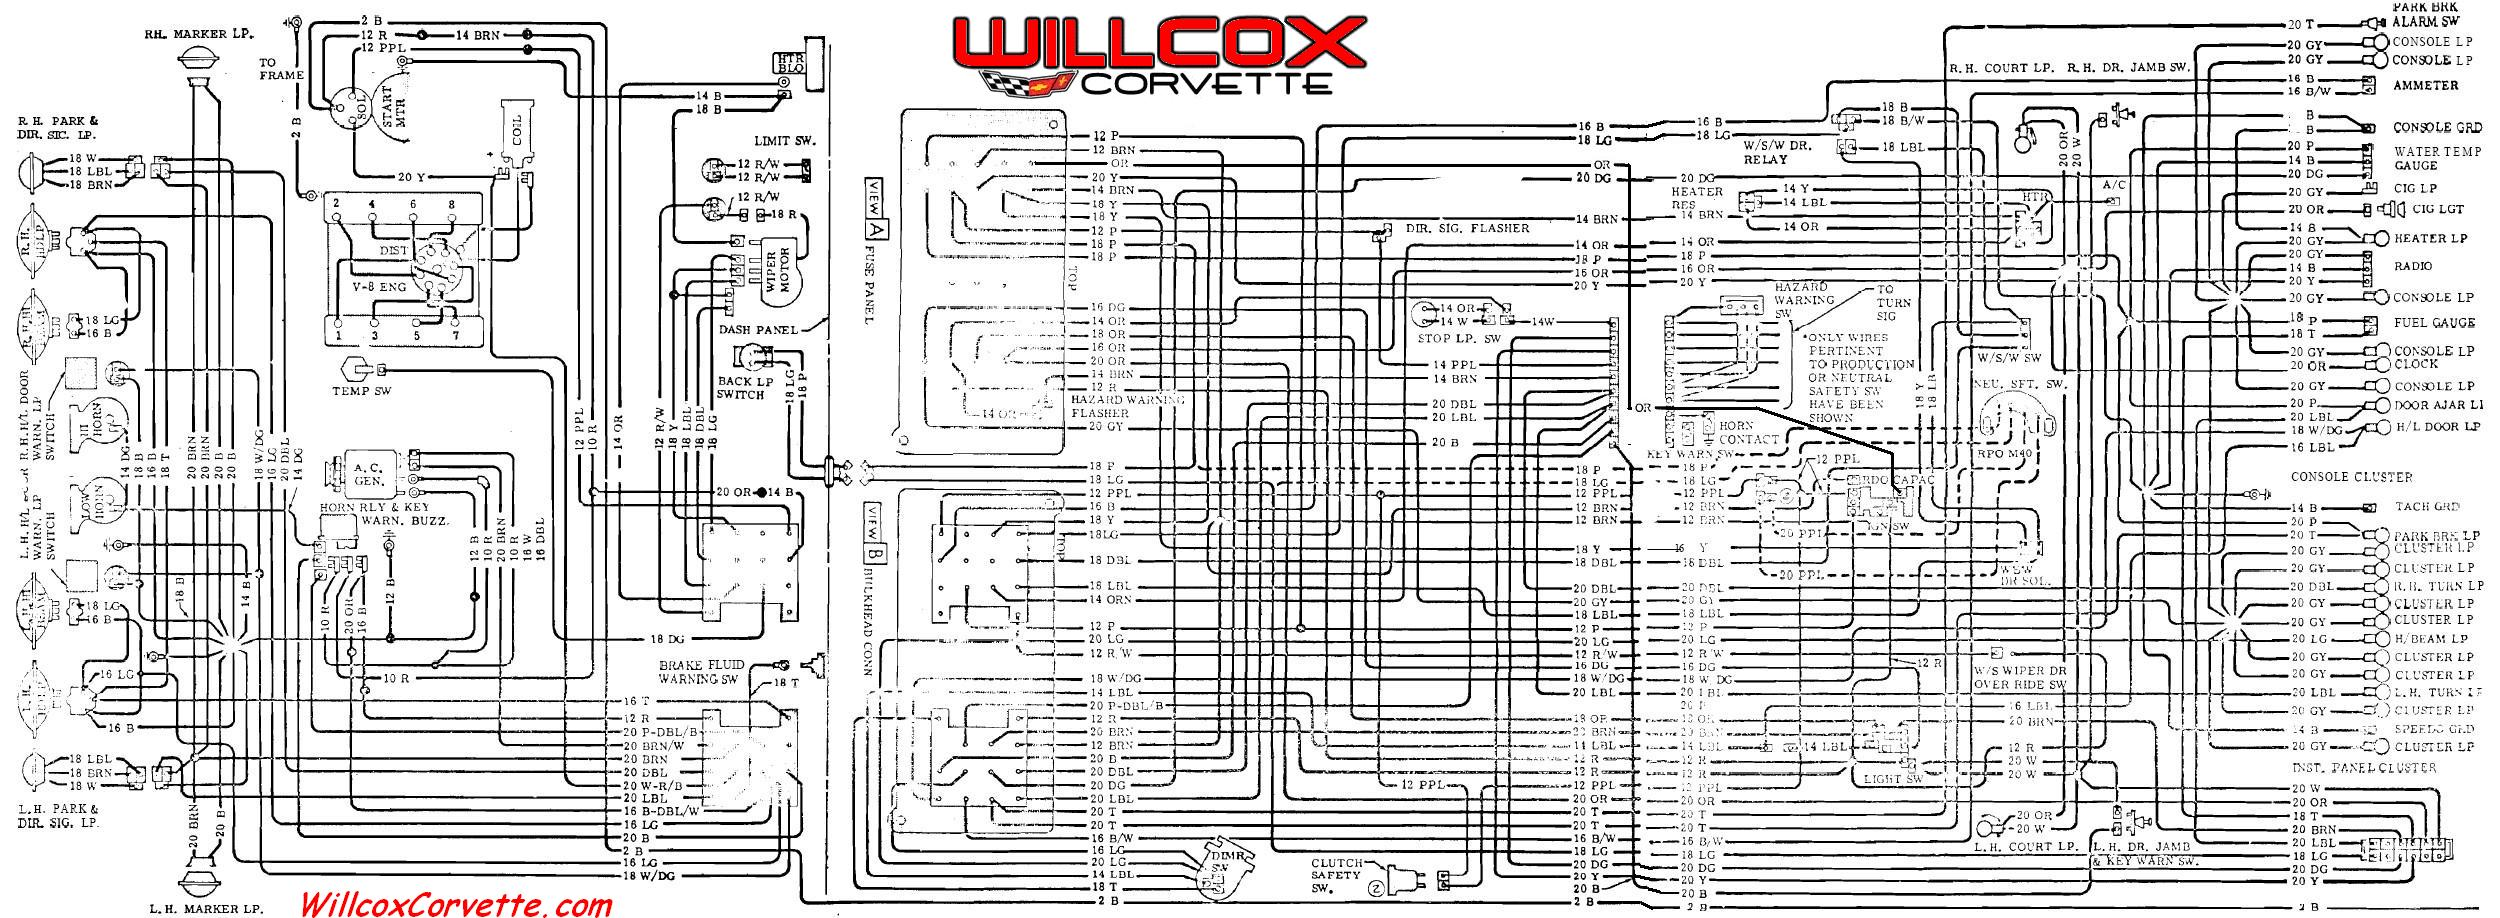 1980 camaro distributor wiring diagram wirdig corvette ignition wiring diagram get image about wiring diagram